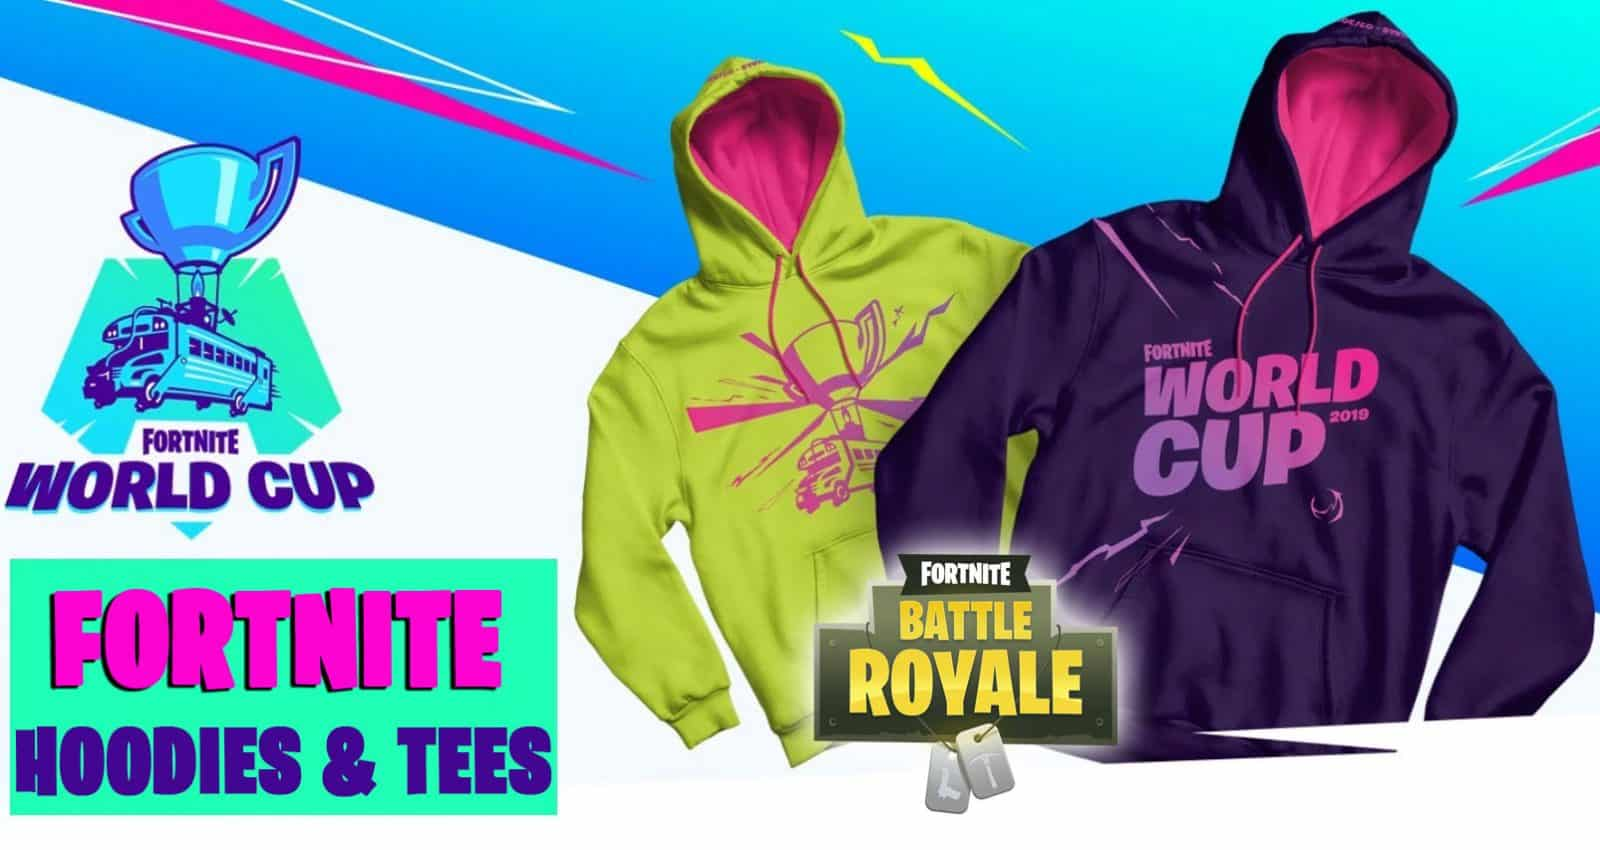 Fortnite Hoodies And T Shirts From The World Cup Are Now Available